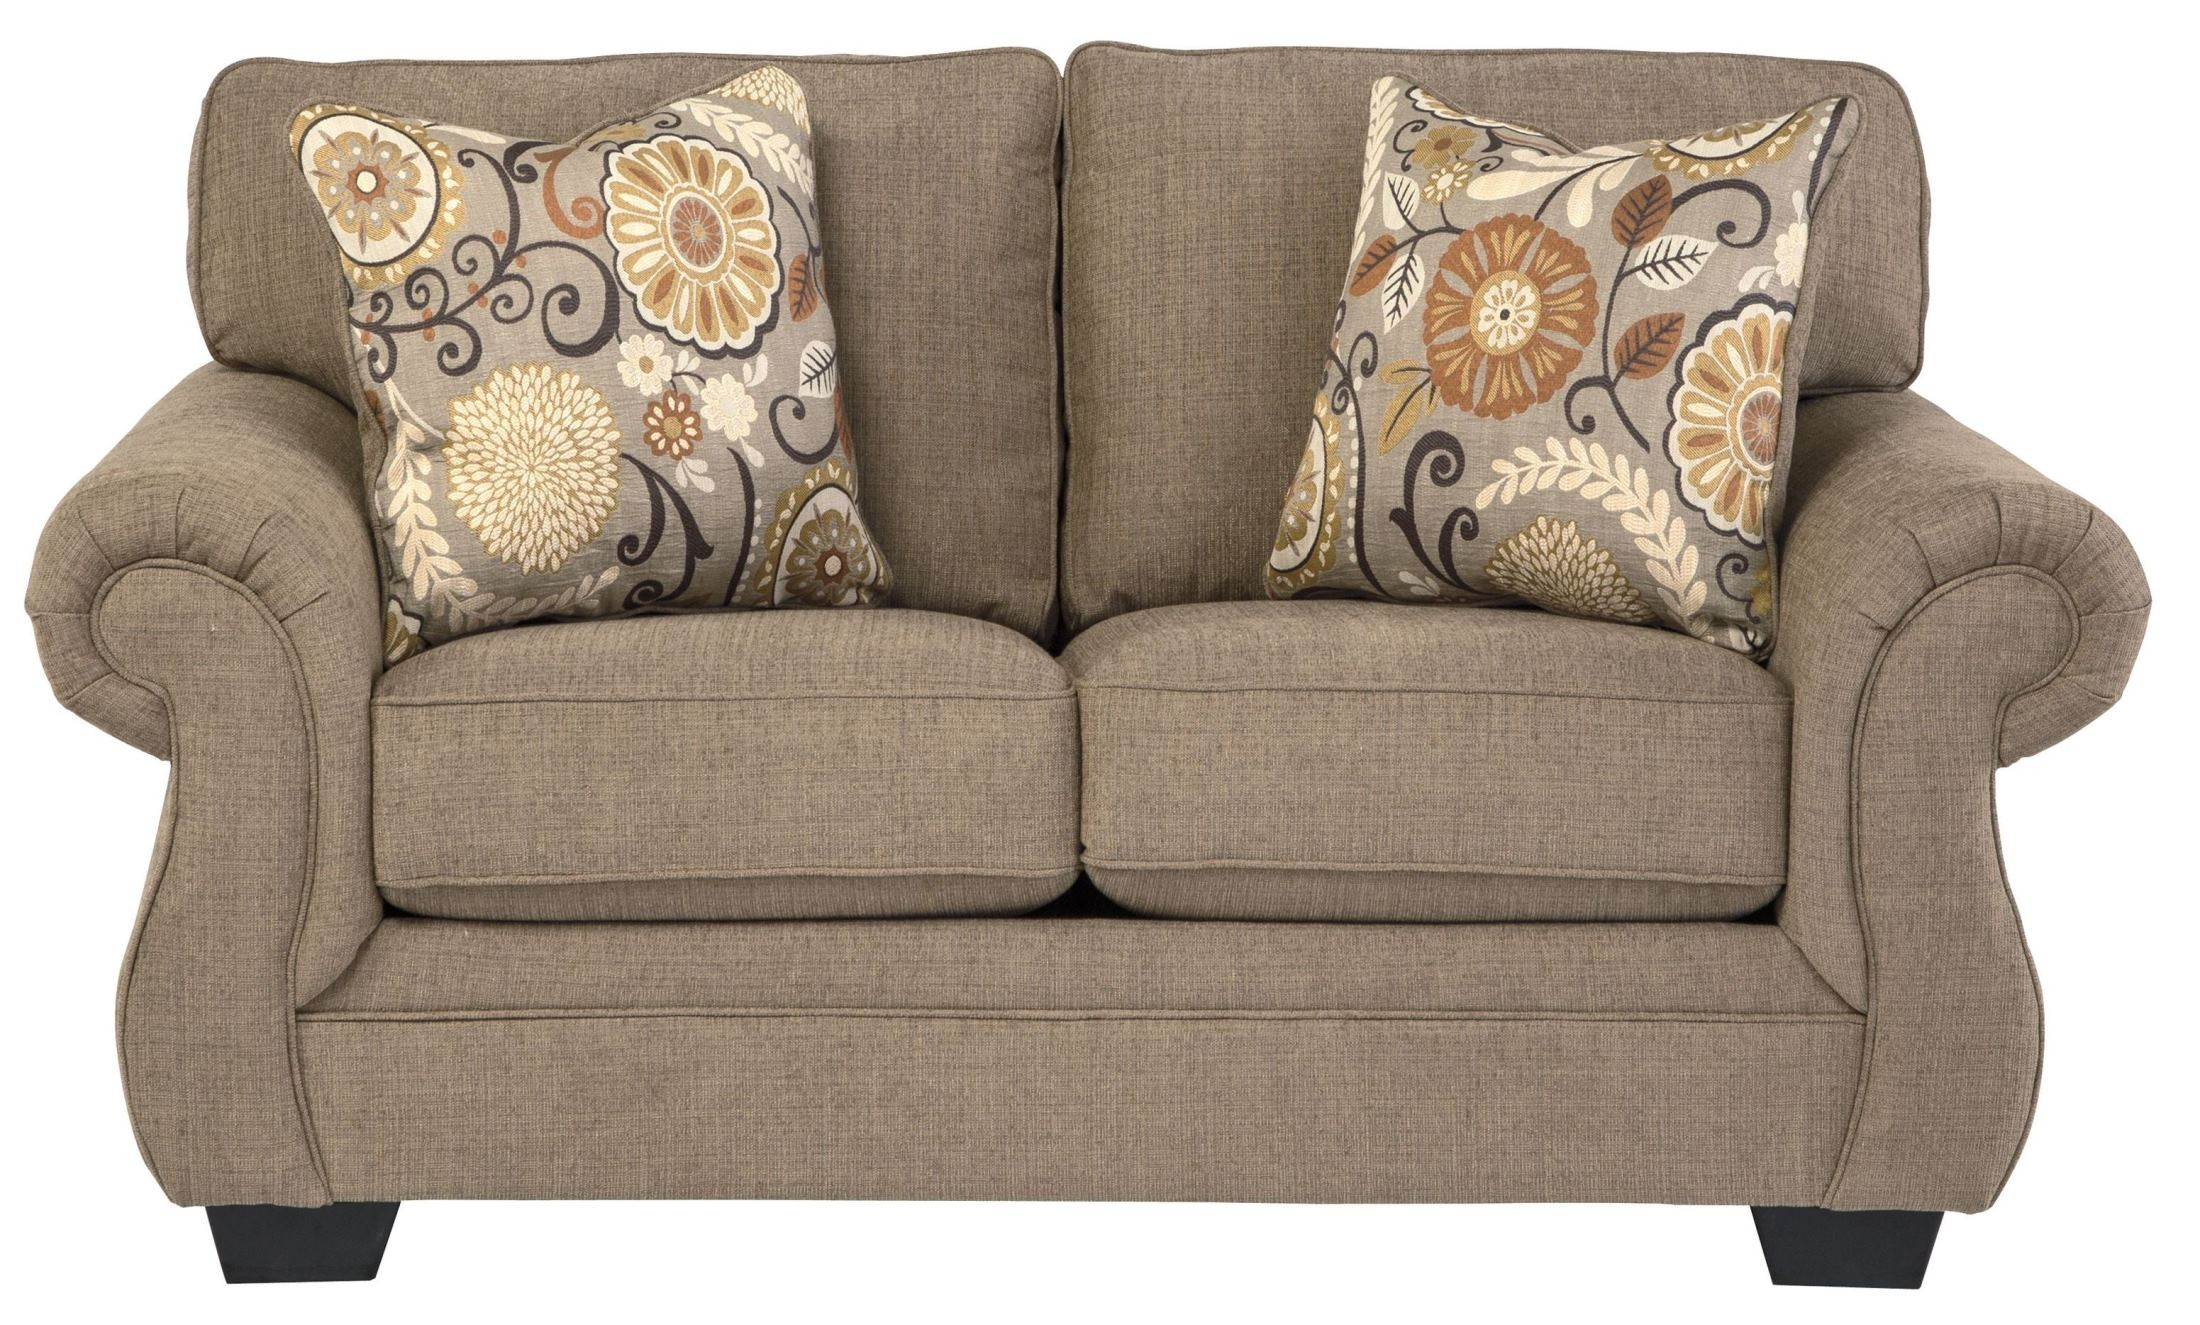 Tailya Barley Living Room Set from Ashley